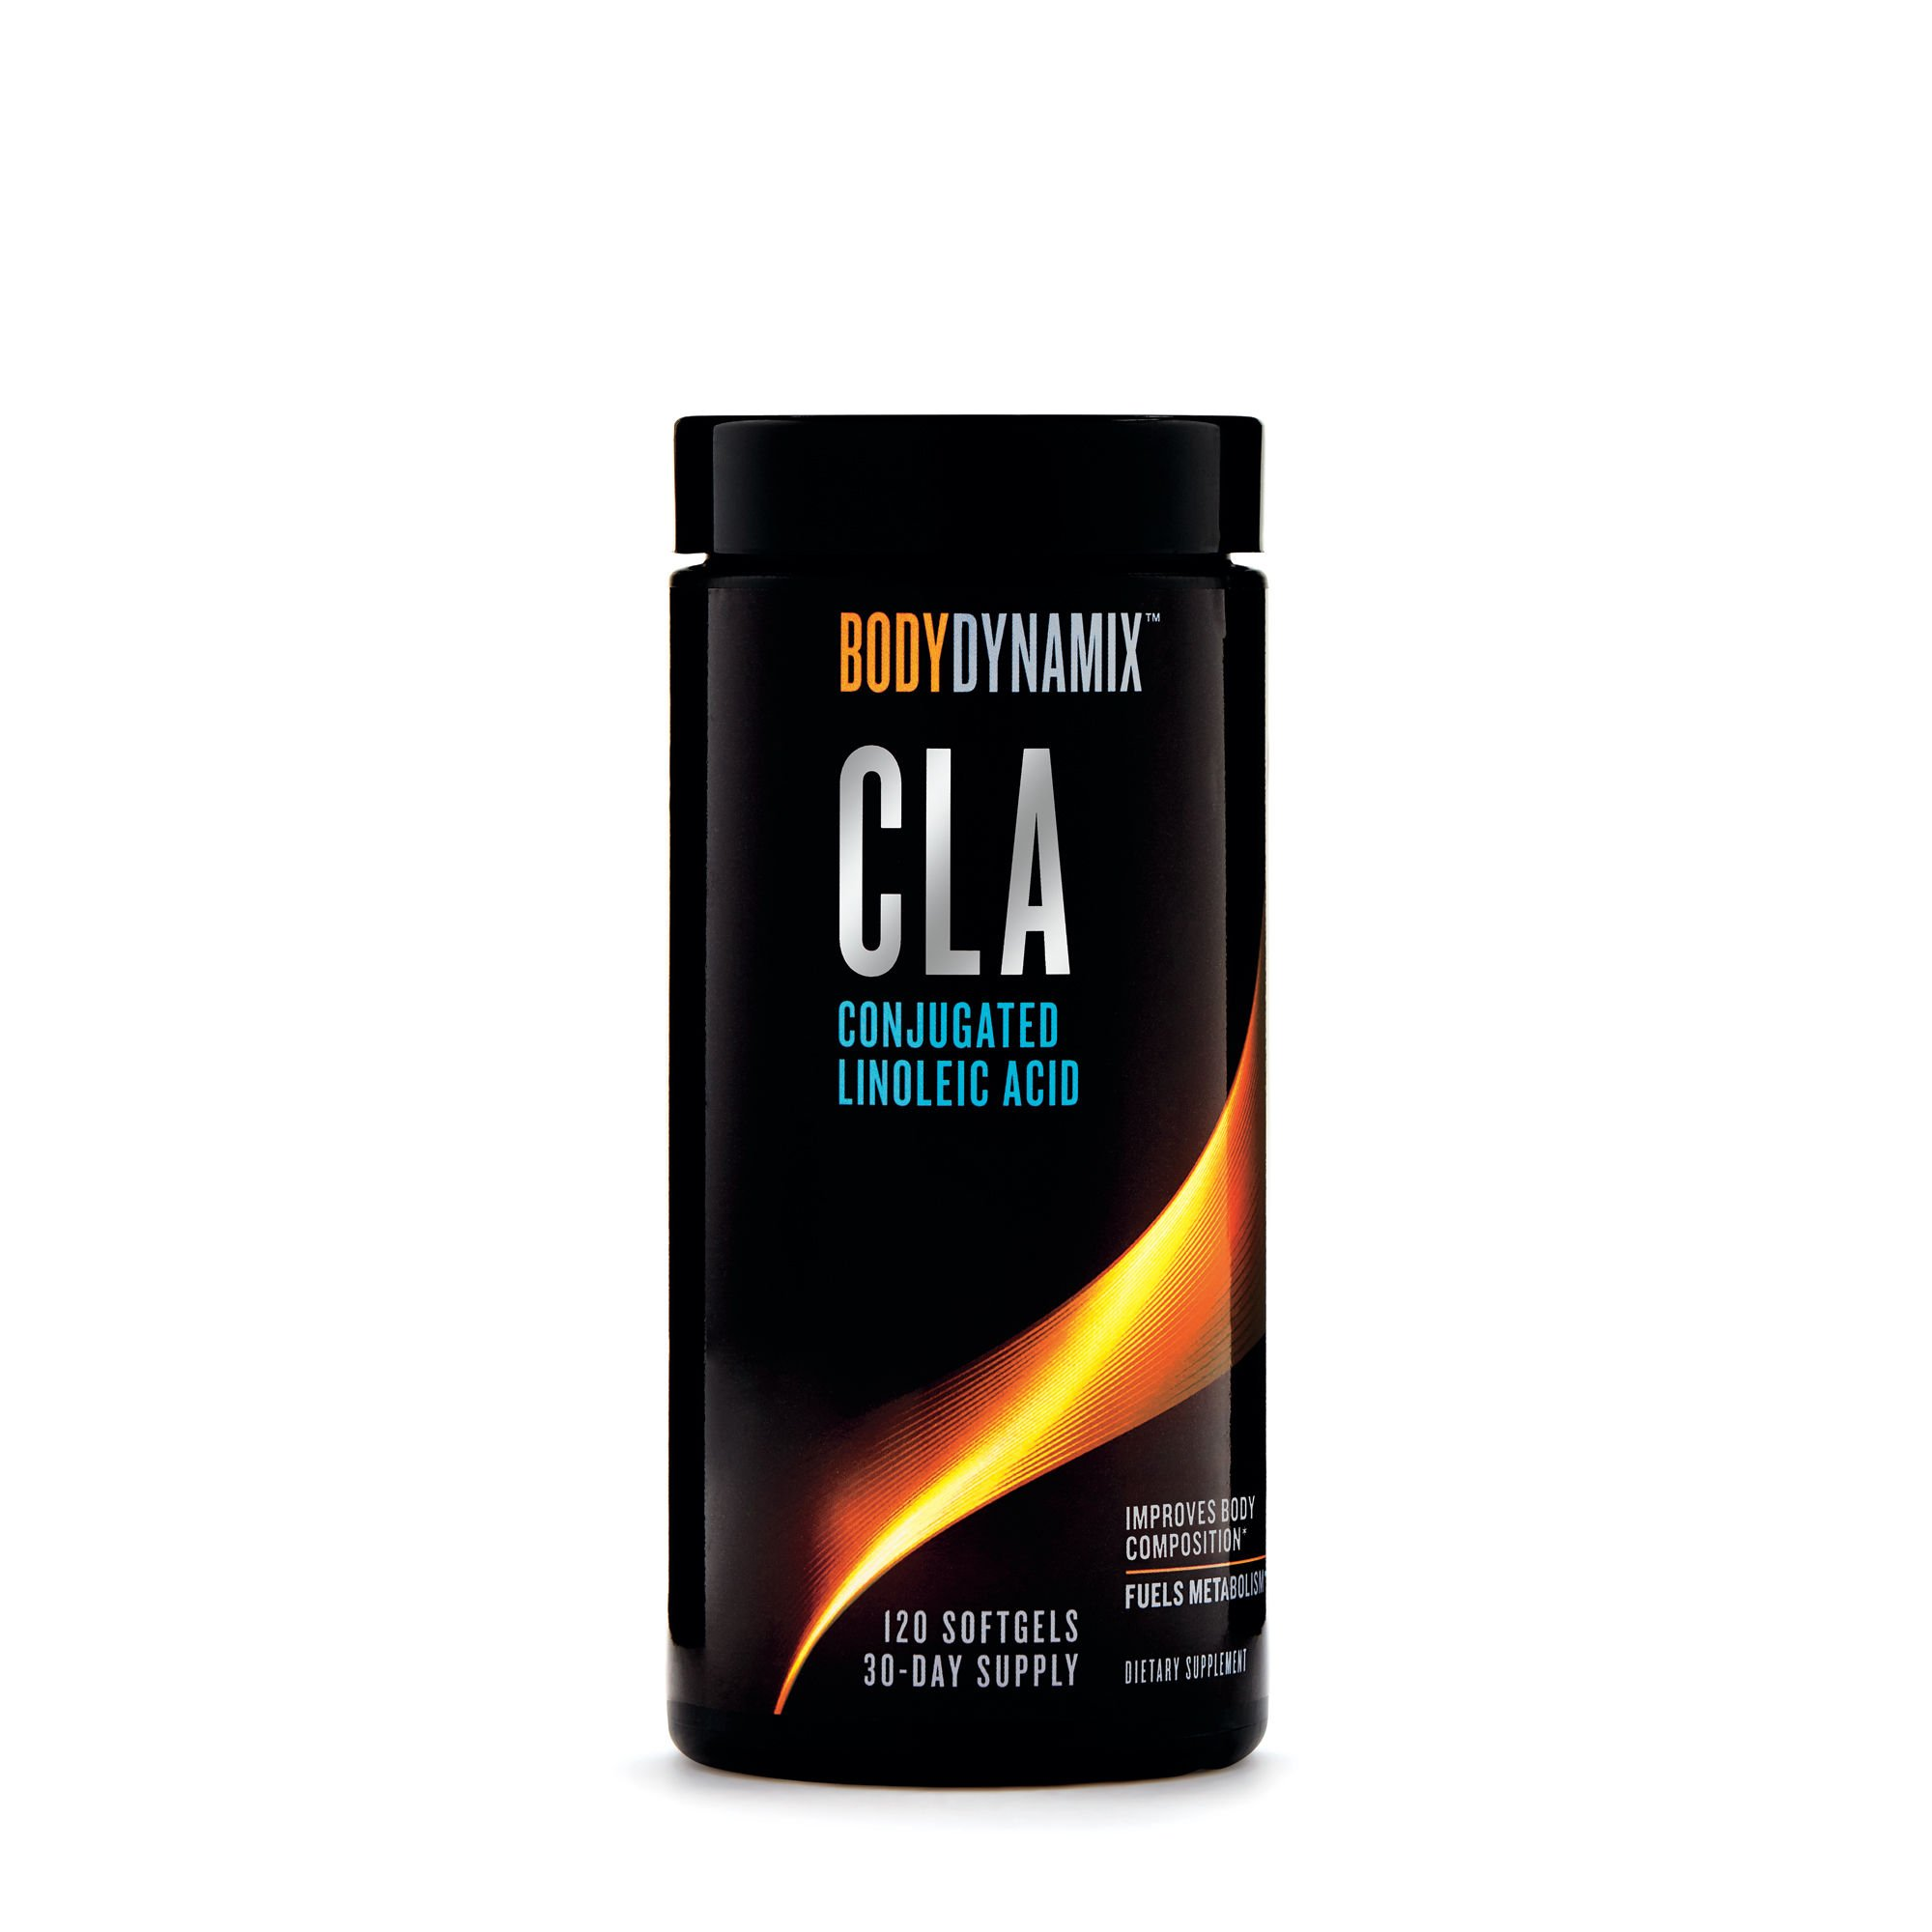 BodyDynamix CLA Conjugated Linoleic Acid, 120 Softgels, Fuels Energy and Fat Metabolism